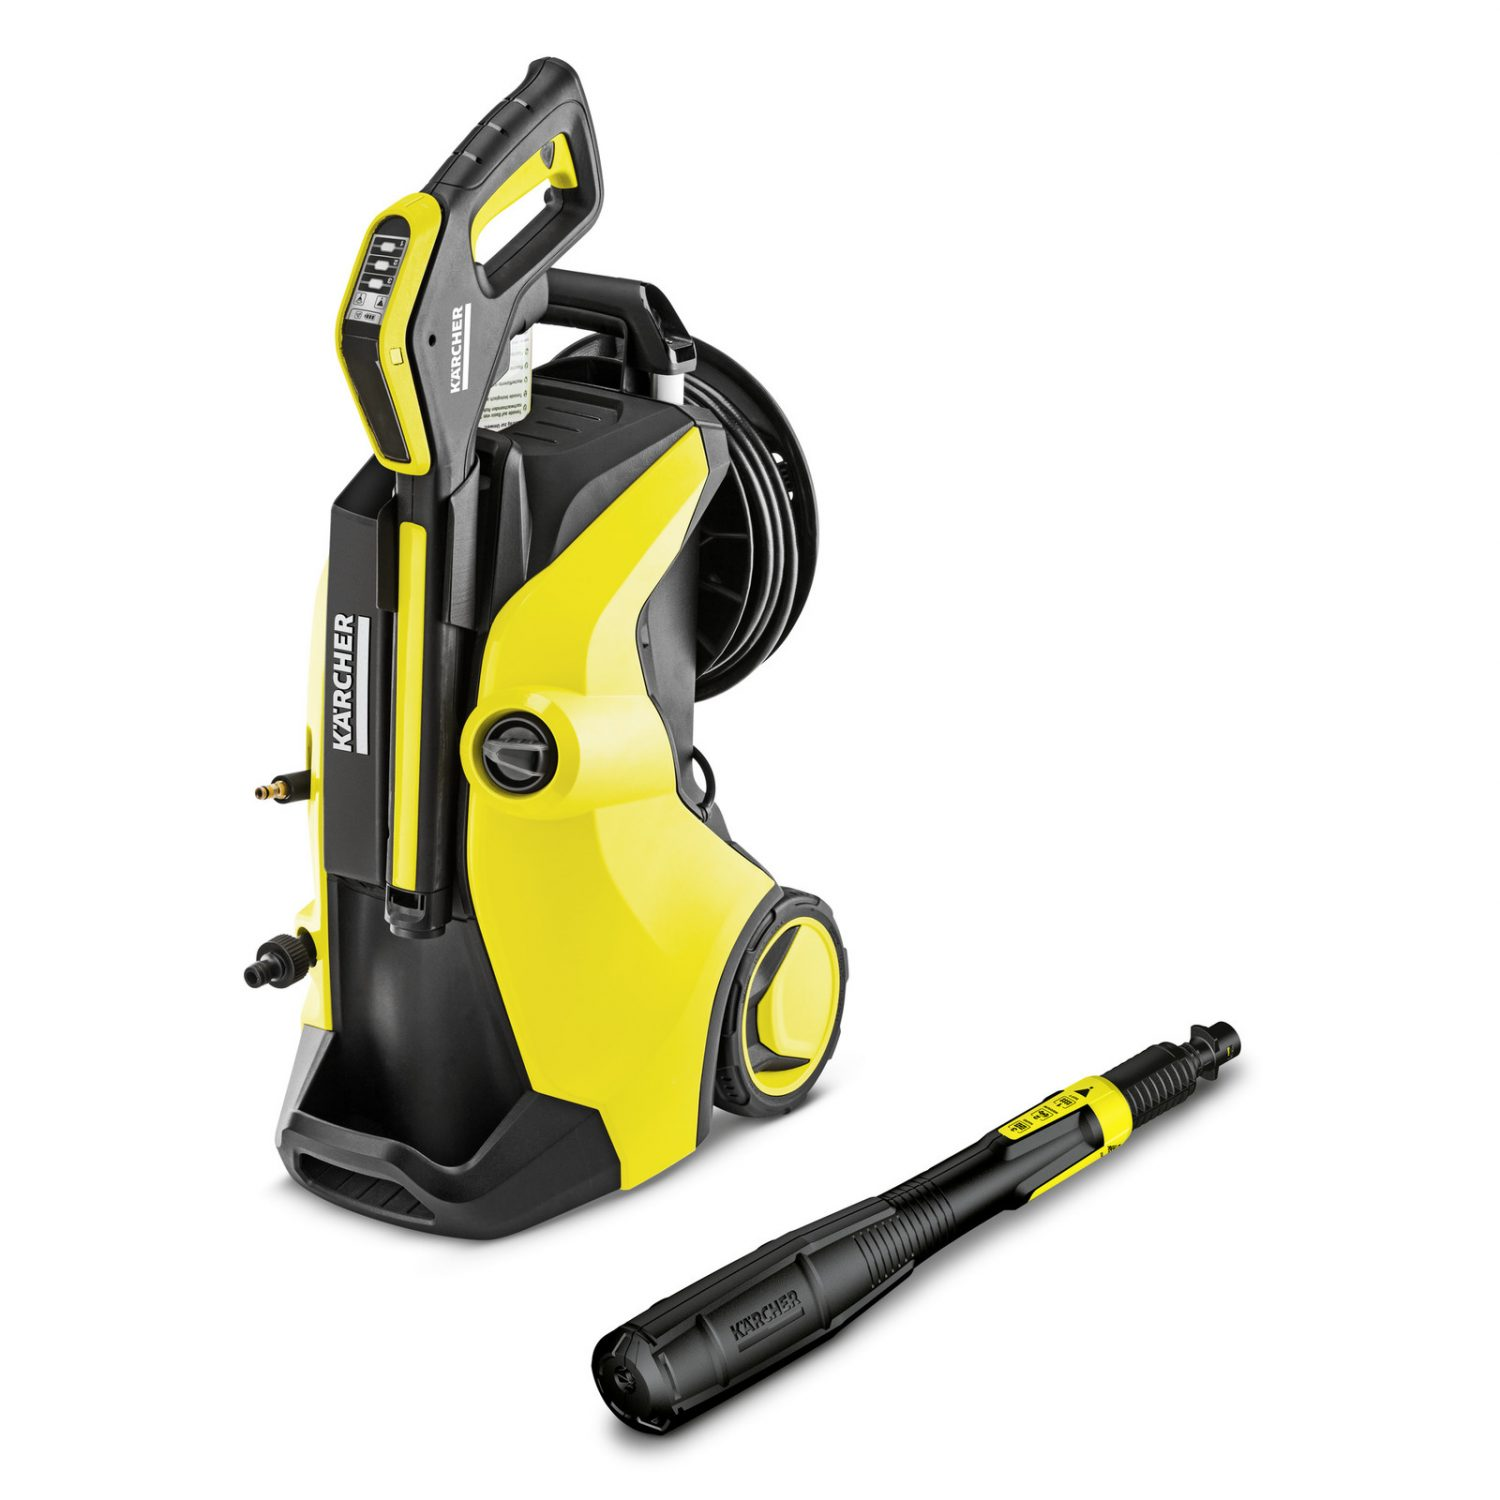 KARCHER 1.324-632.0 - K5 Premium Full Control Pressure Washer